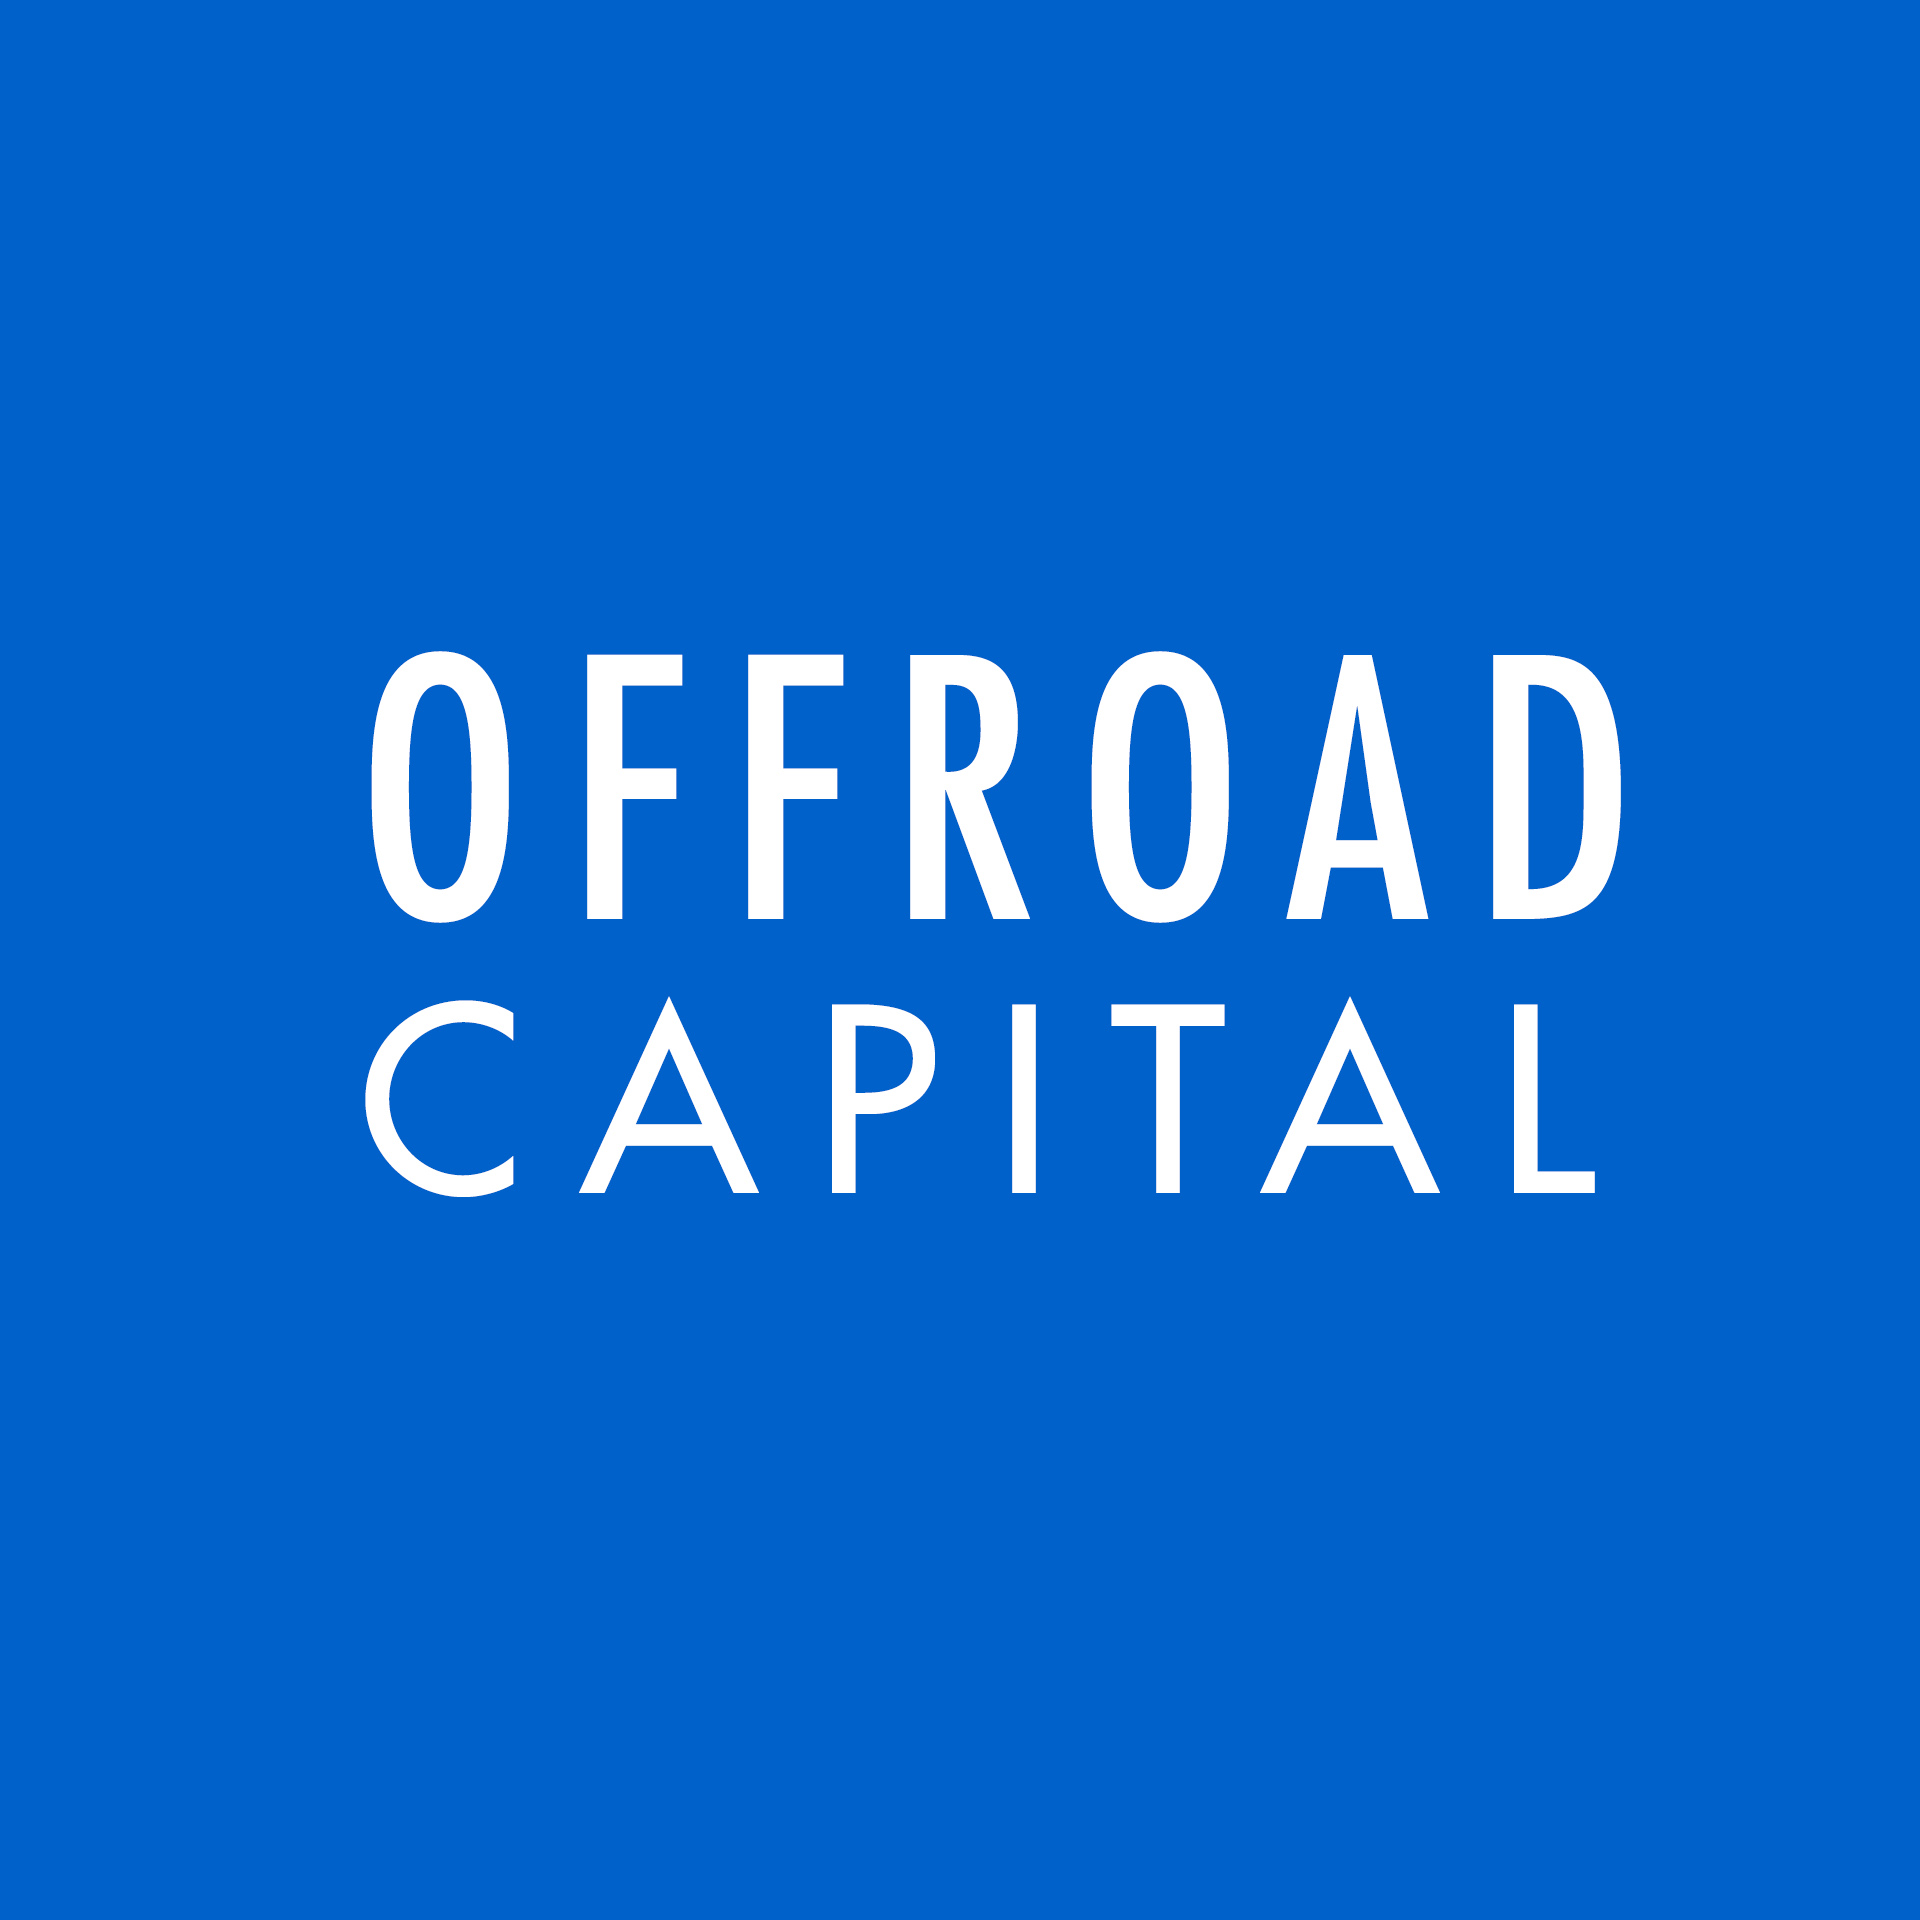 Offroad Capital <br><span>(ipCapital)</span>